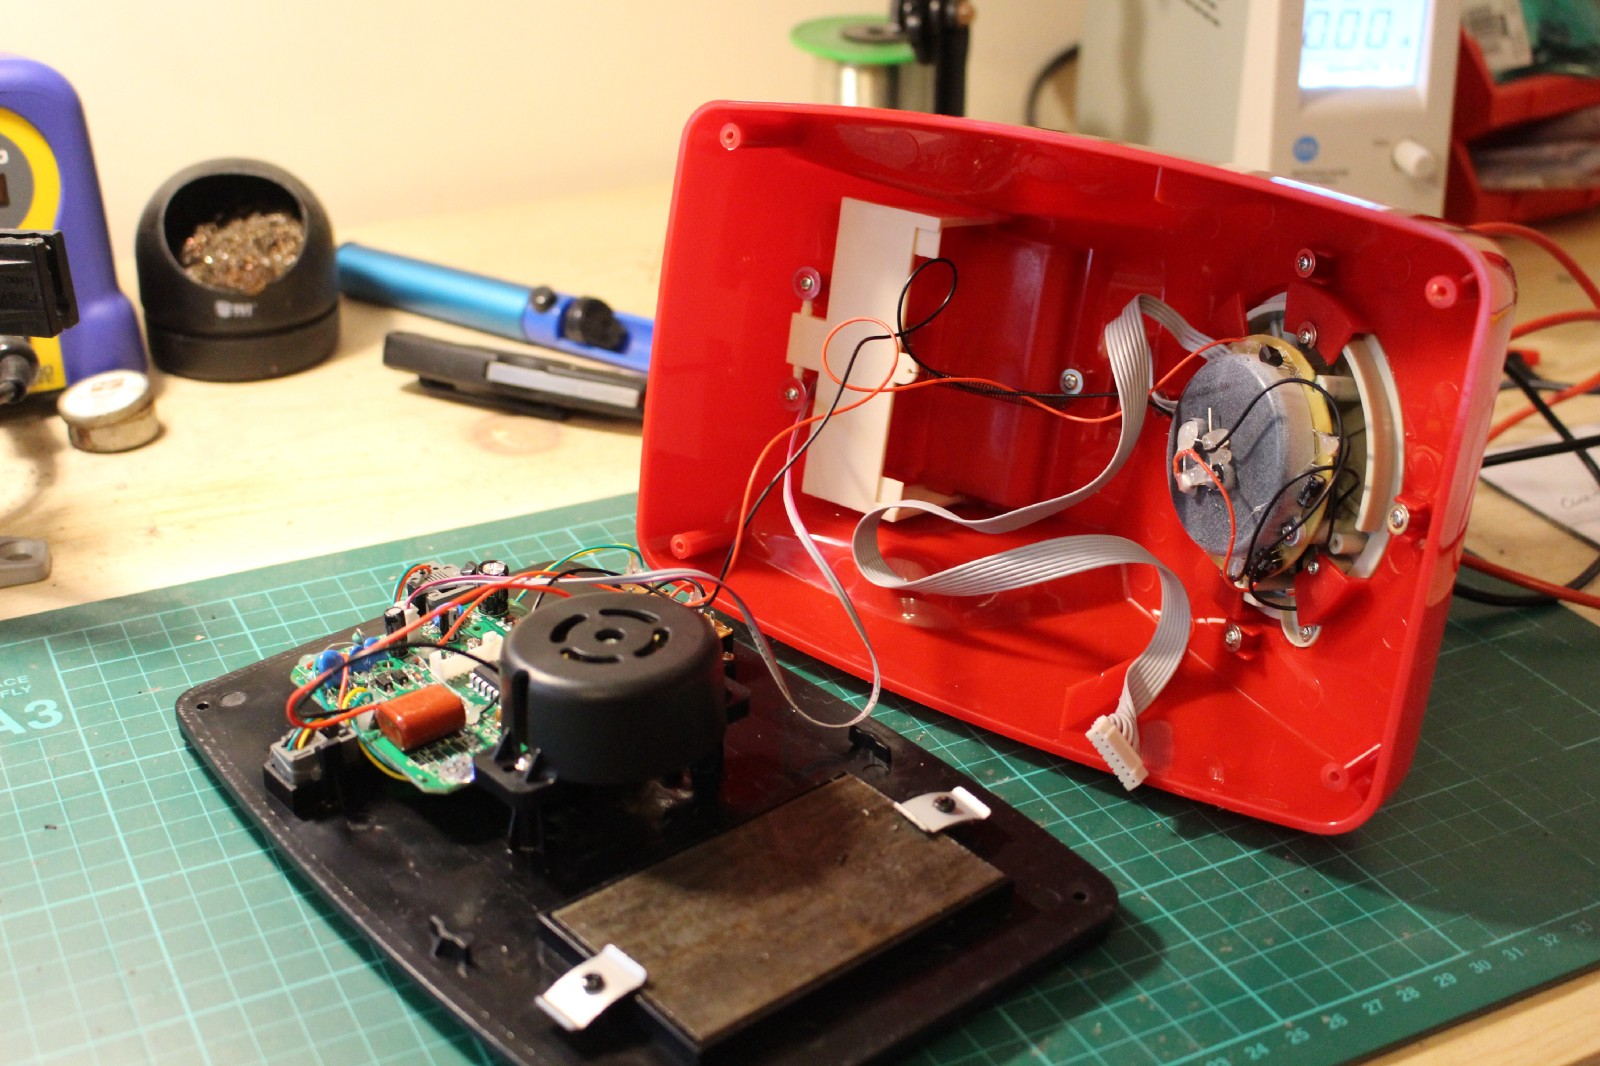 A Retro Rotary Phone Powered By Aiy Projects And The Raspberry Pi Telephone Wiring Connector Block Opening Up Gpo 746